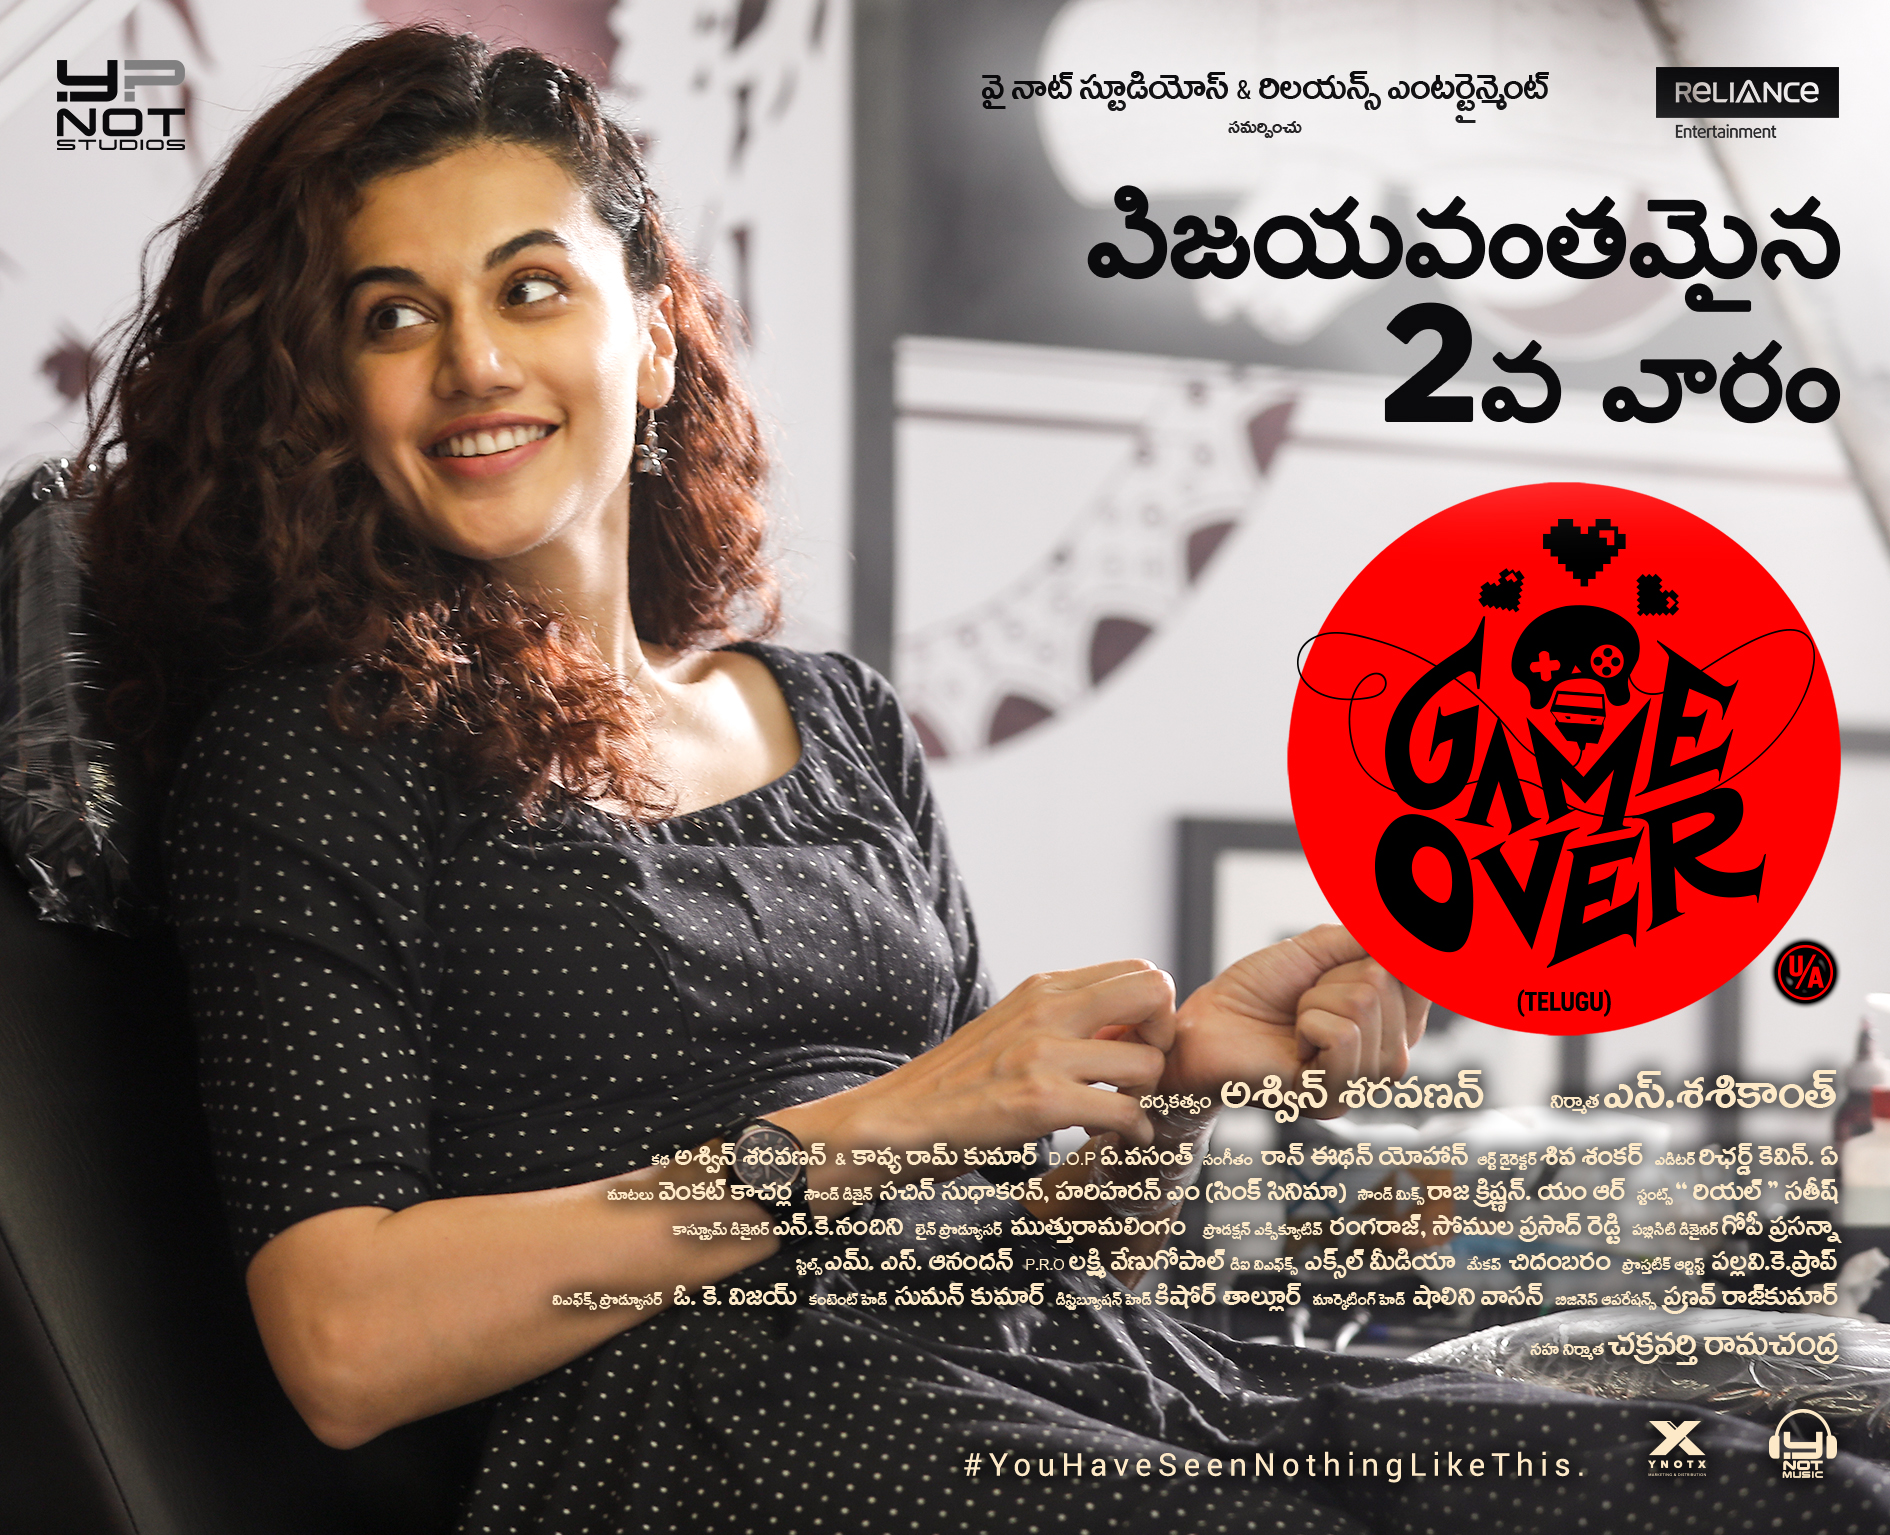 GameOver-Telugu-June23-01